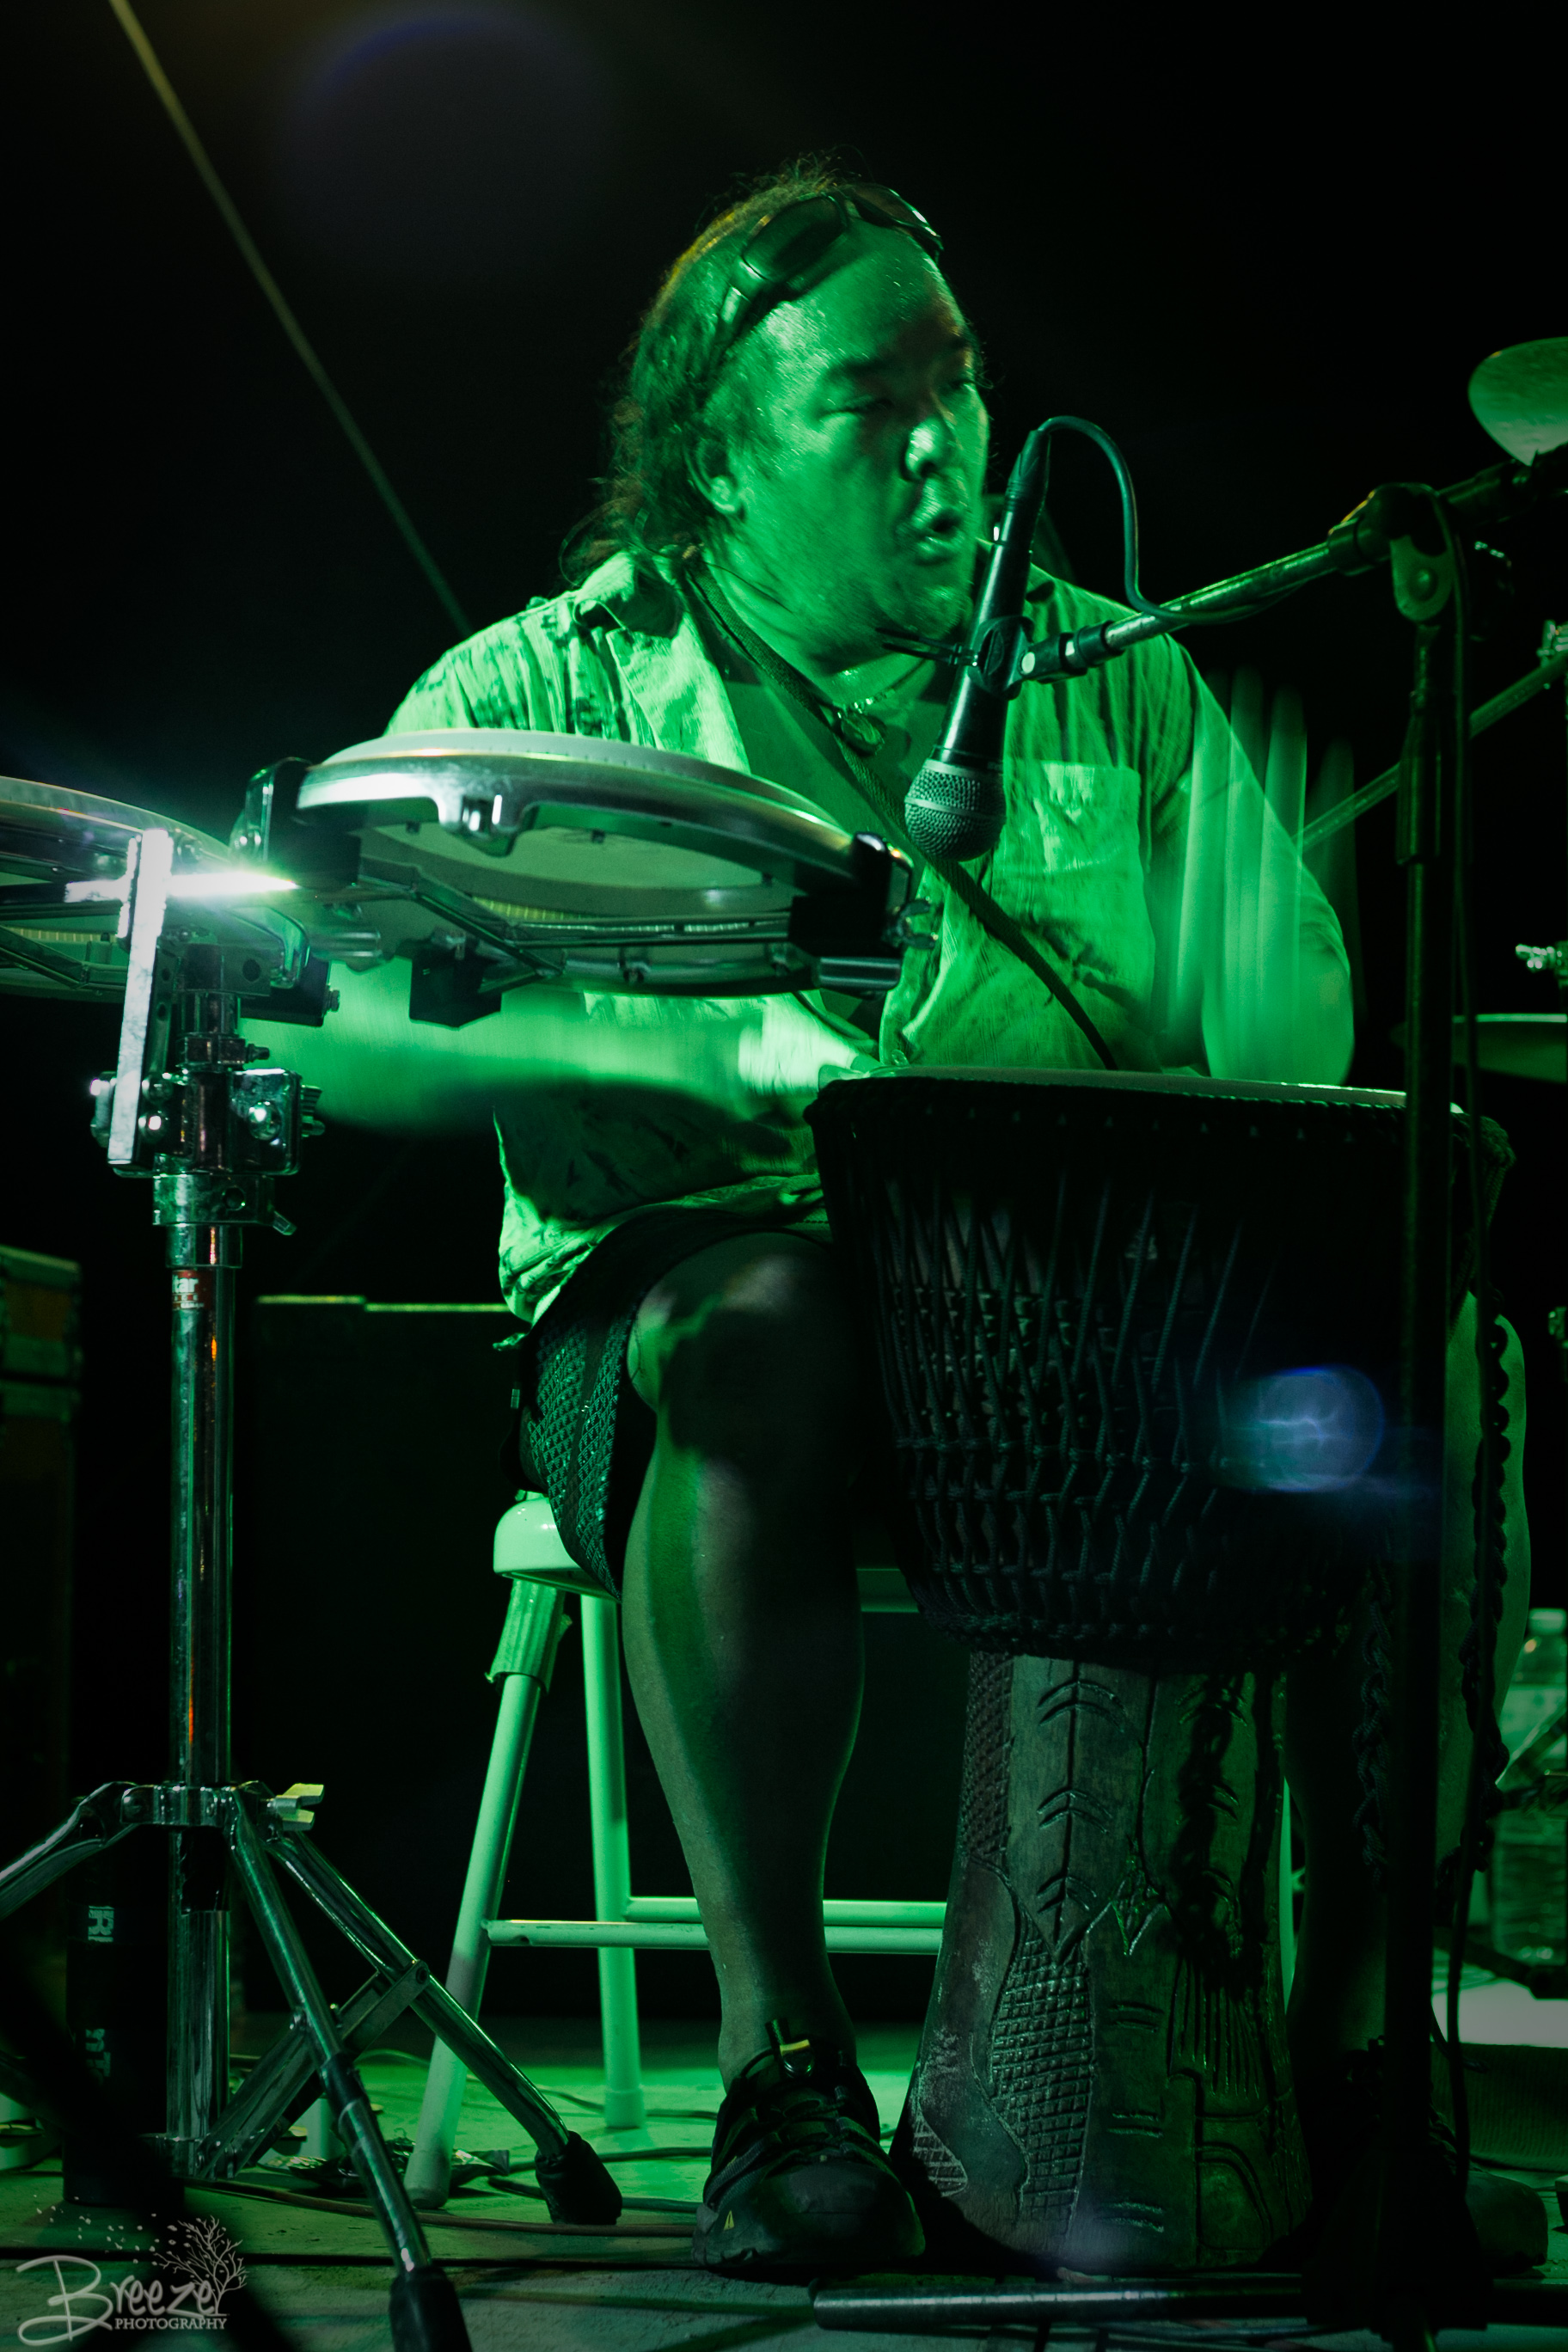 Jeff Pang / Percussion & Sound